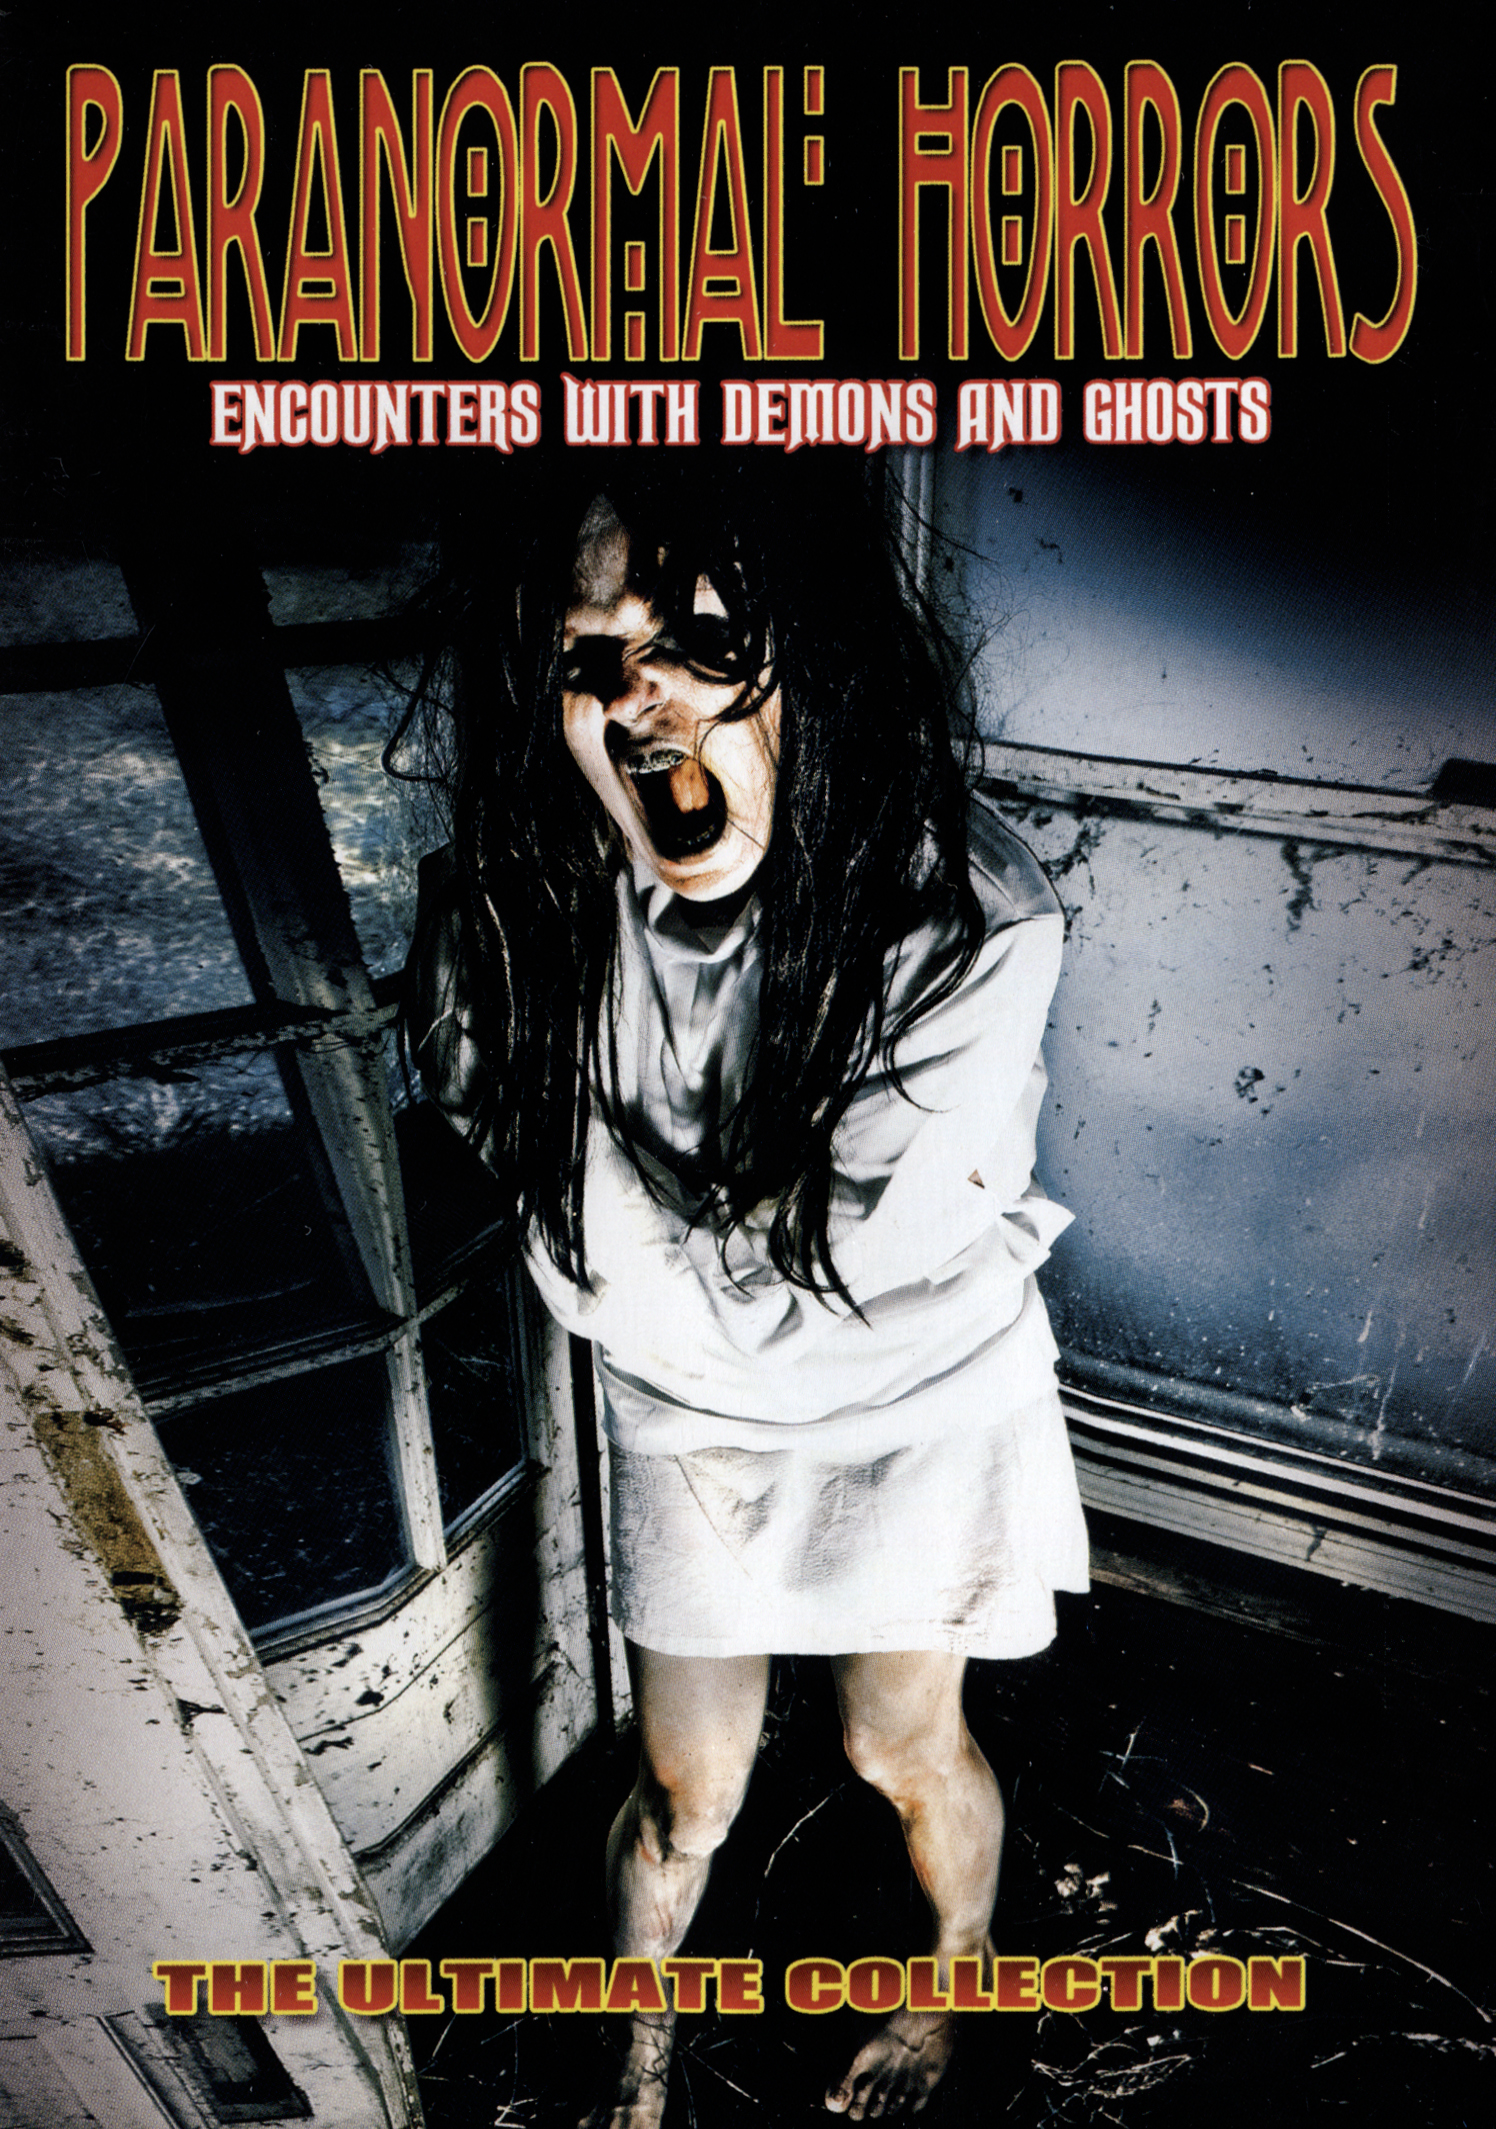 Paranormal Horrors: Encounters with Demons and Ghosts